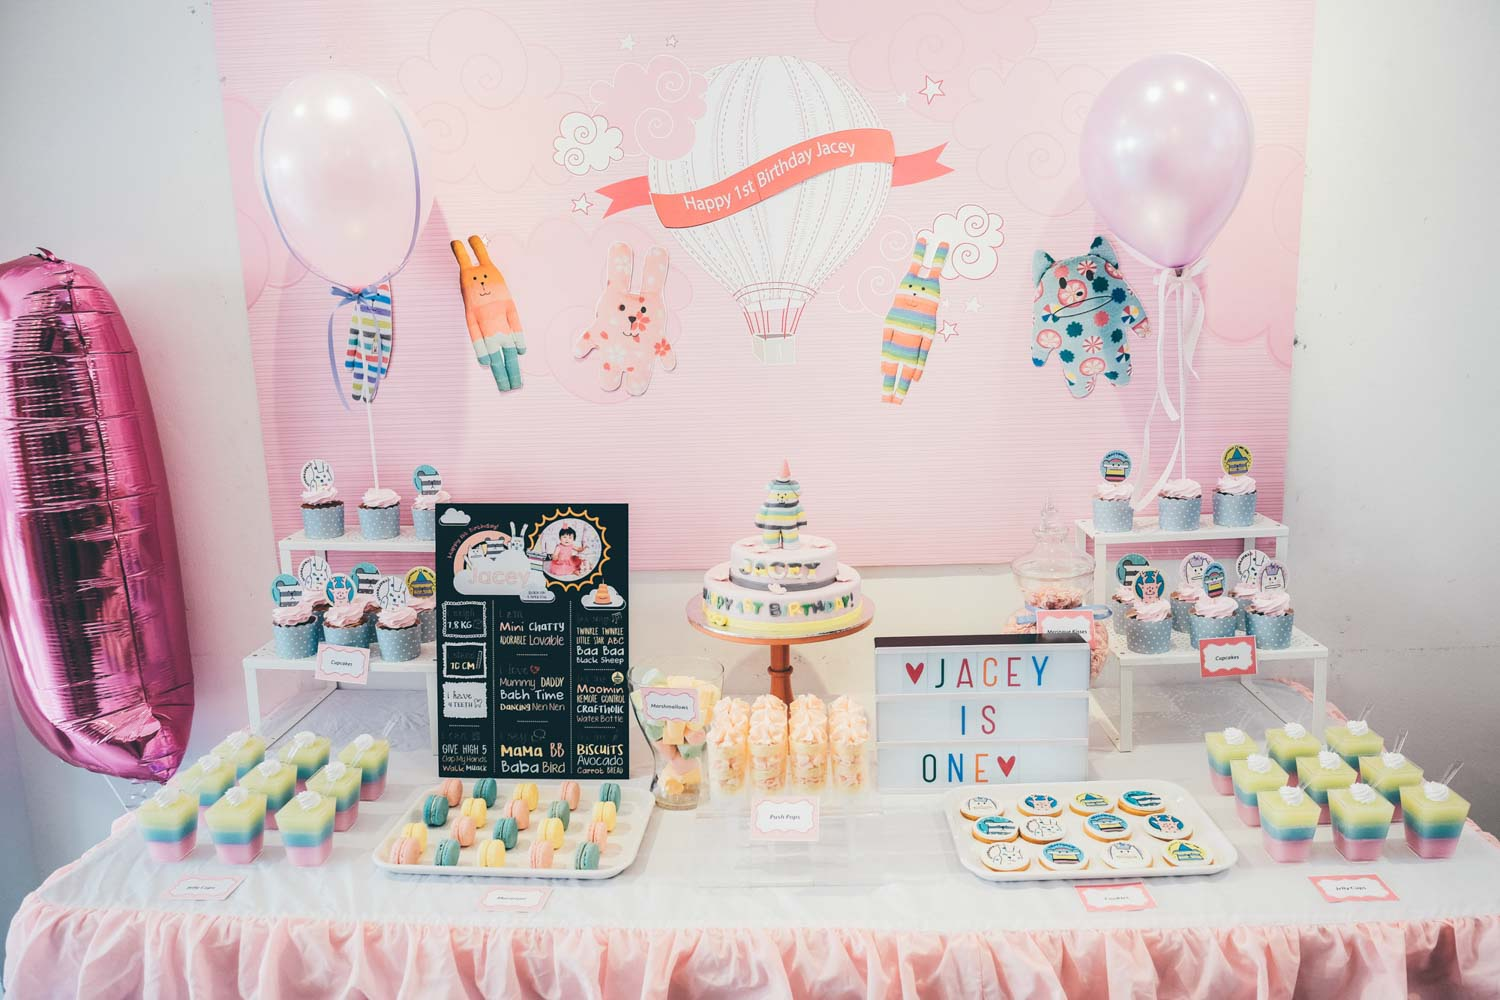 Birthday party dessert table for Jacey, craftholic themed!